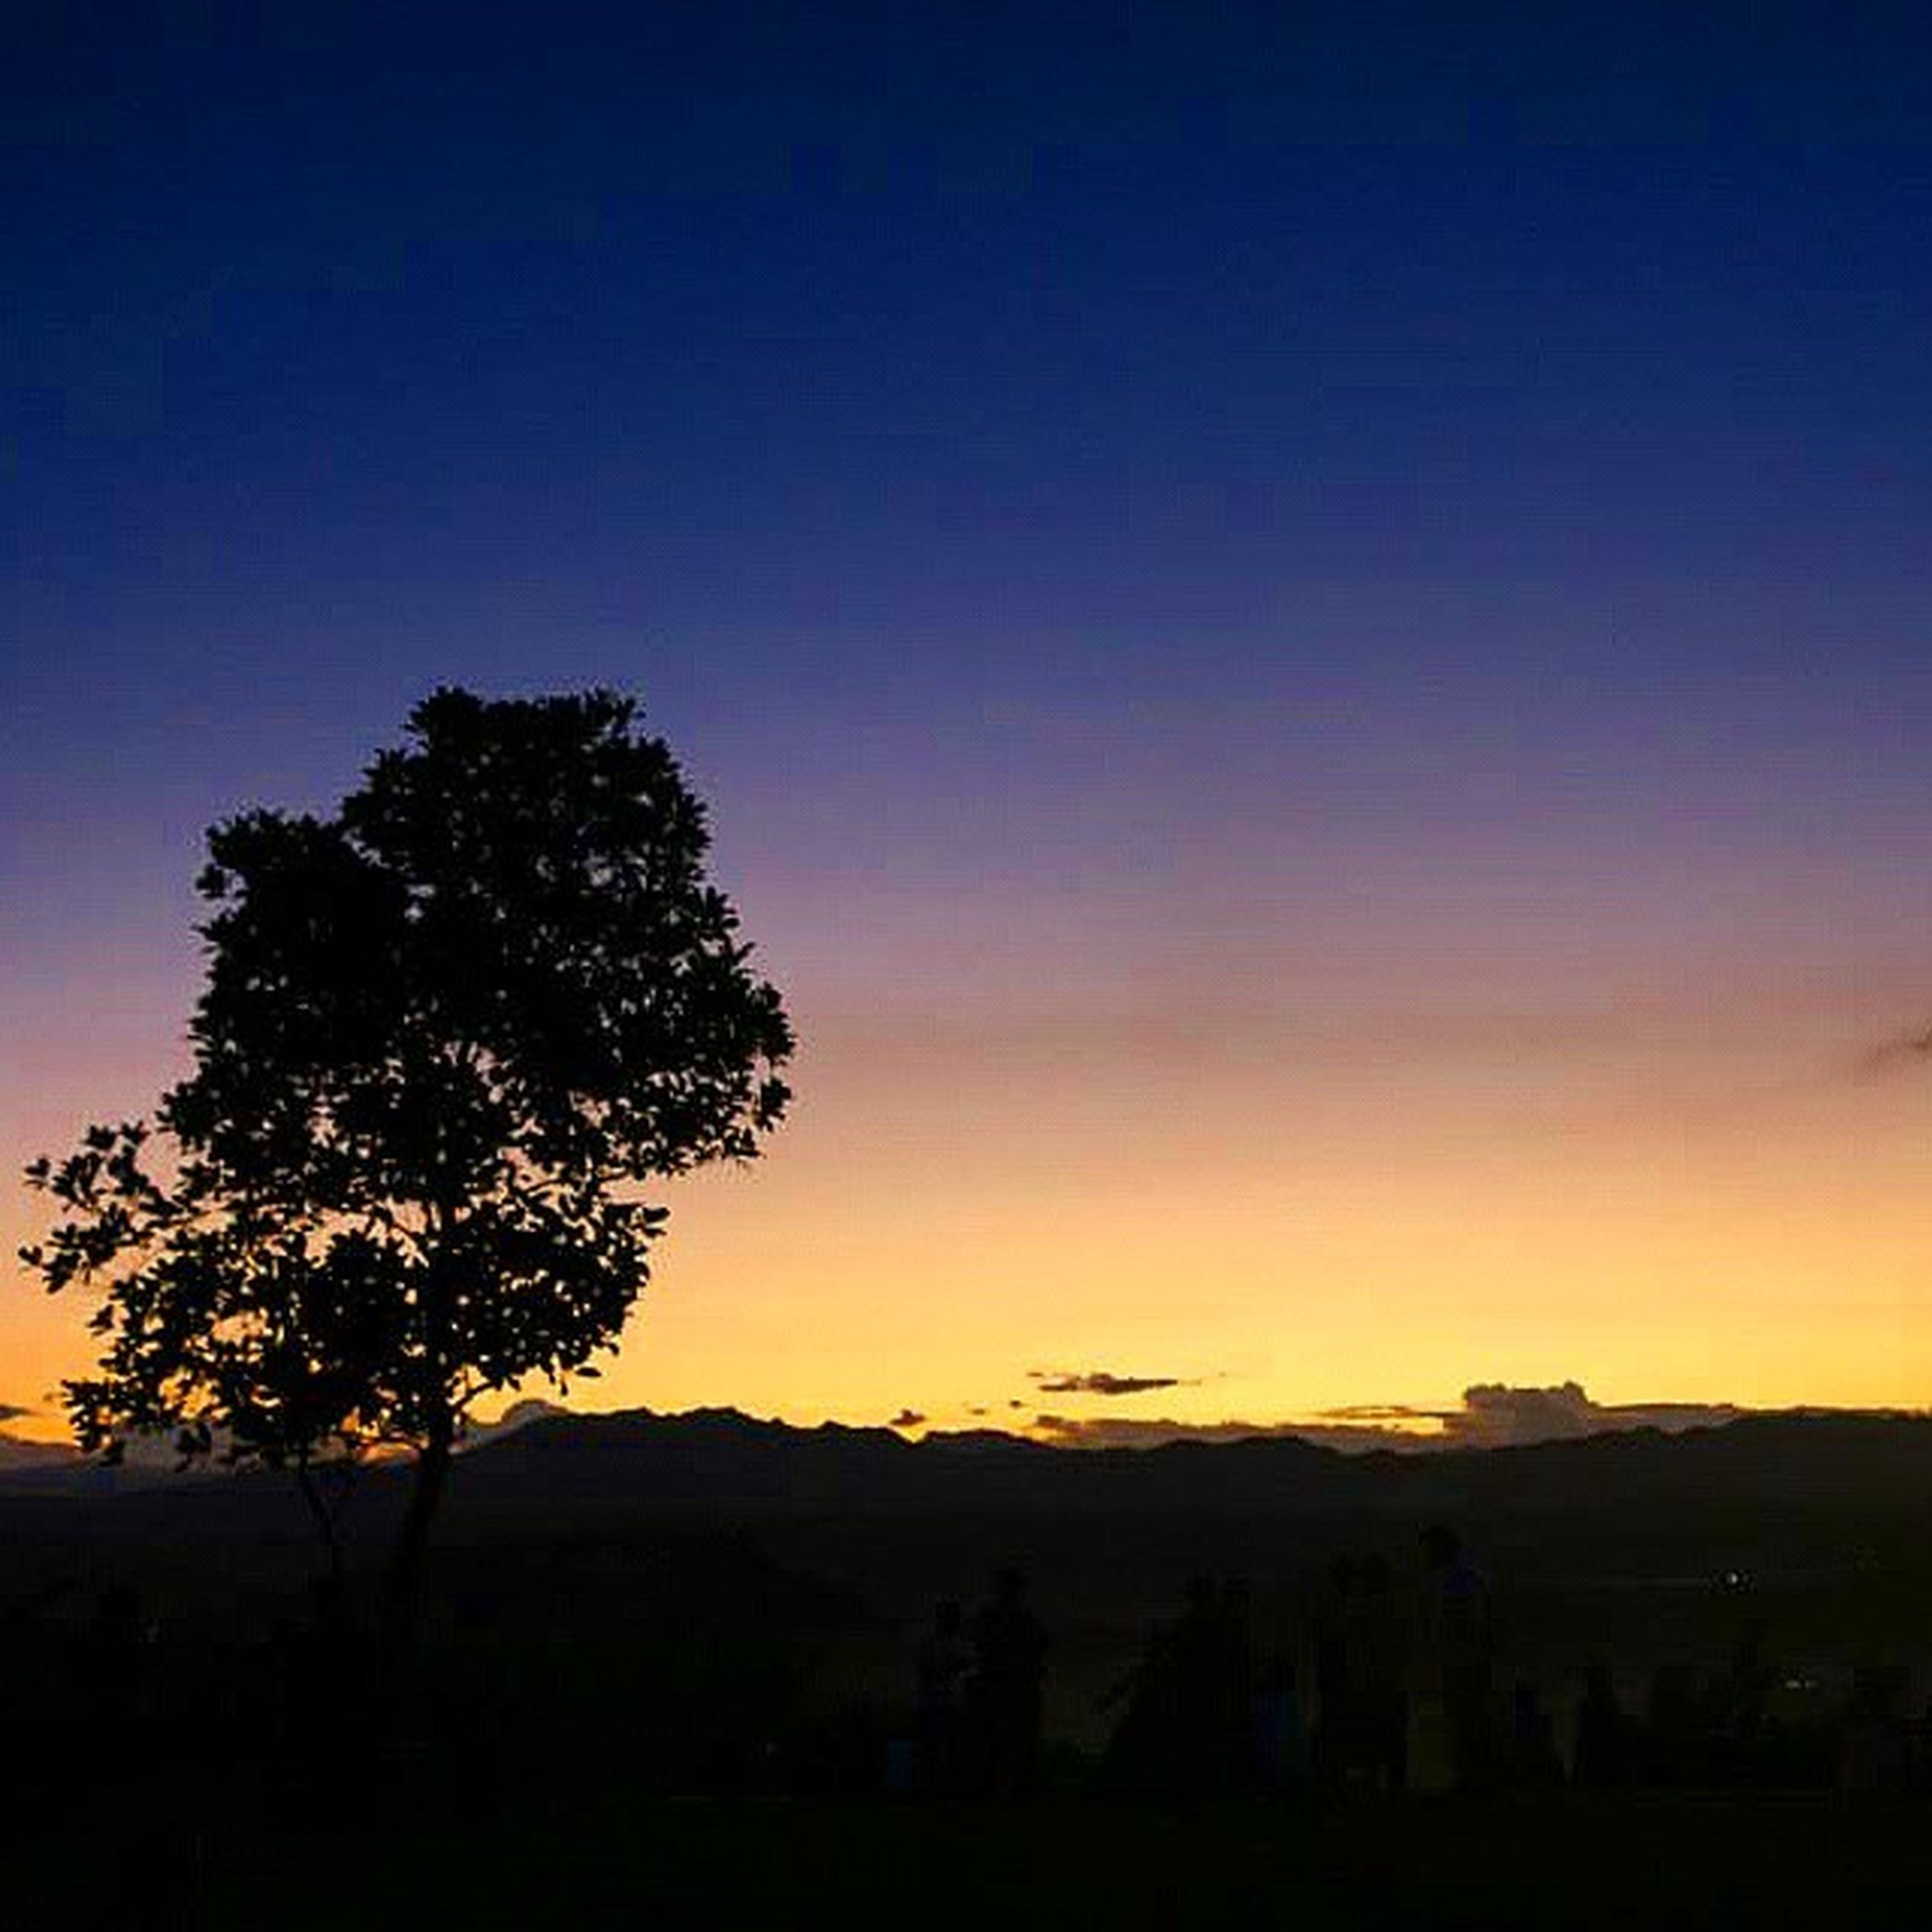 silhouette, sunset, tranquil scene, scenics, beauty in nature, tranquility, tree, copy space, sky, landscape, nature, orange color, blue, idyllic, dusk, dark, outdoors, clear sky, outline, no people